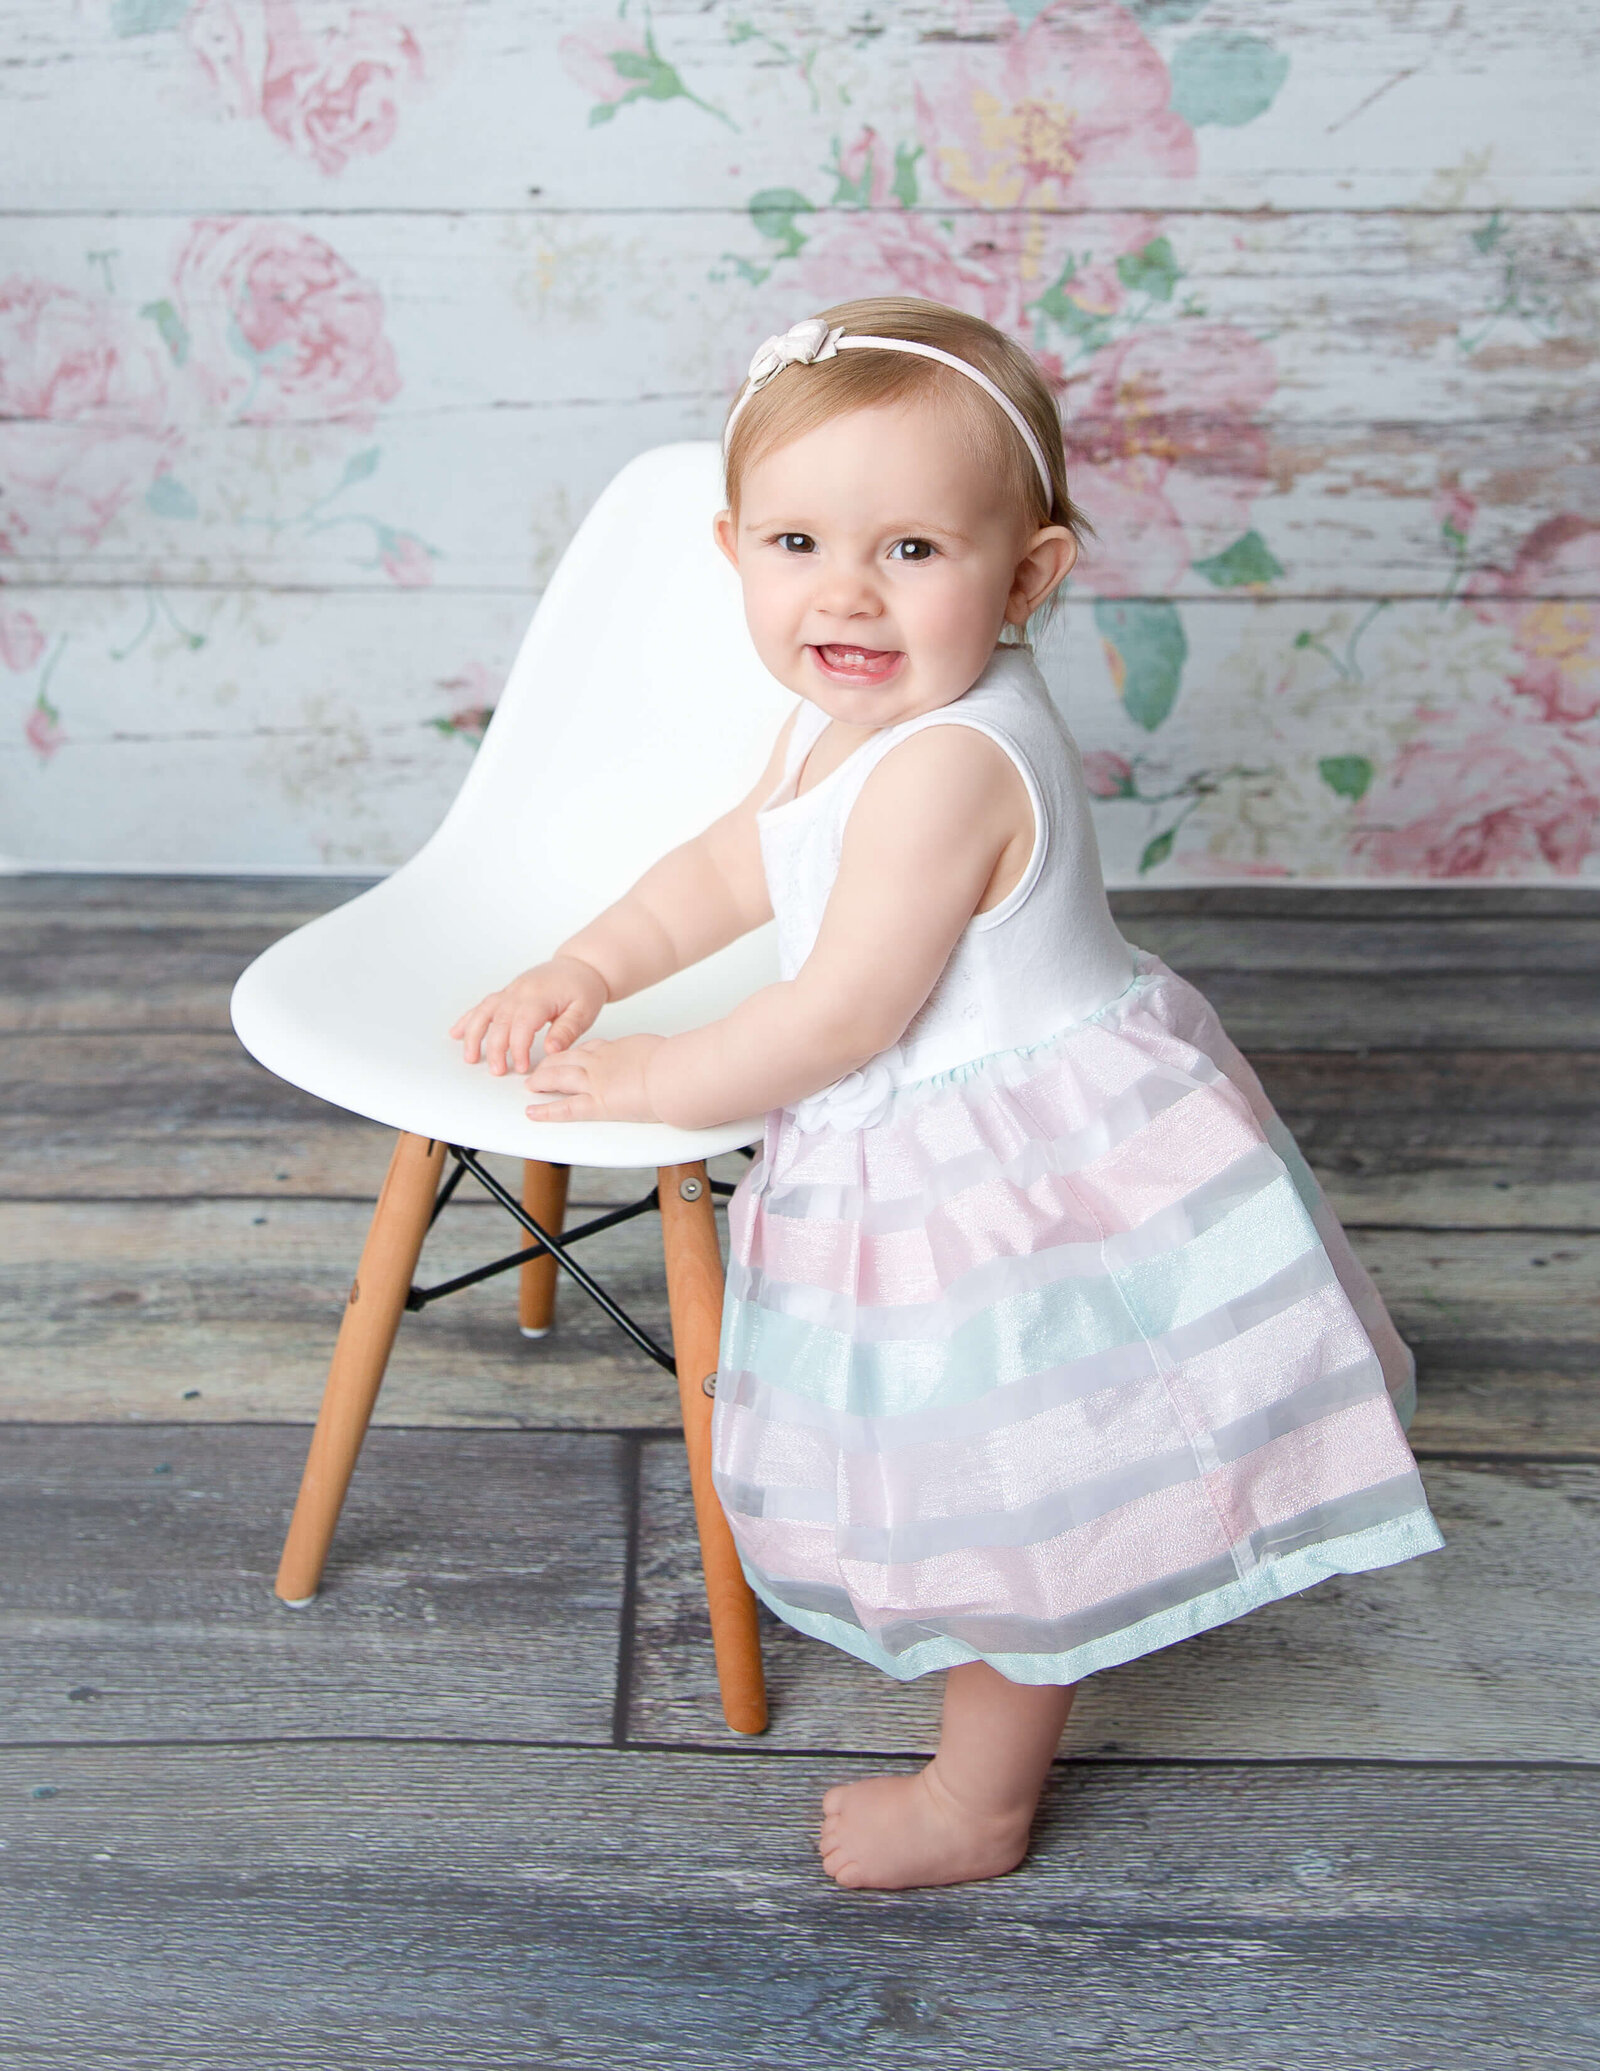 Adorable little girl posed in  our stdio located in Rochester, NY.